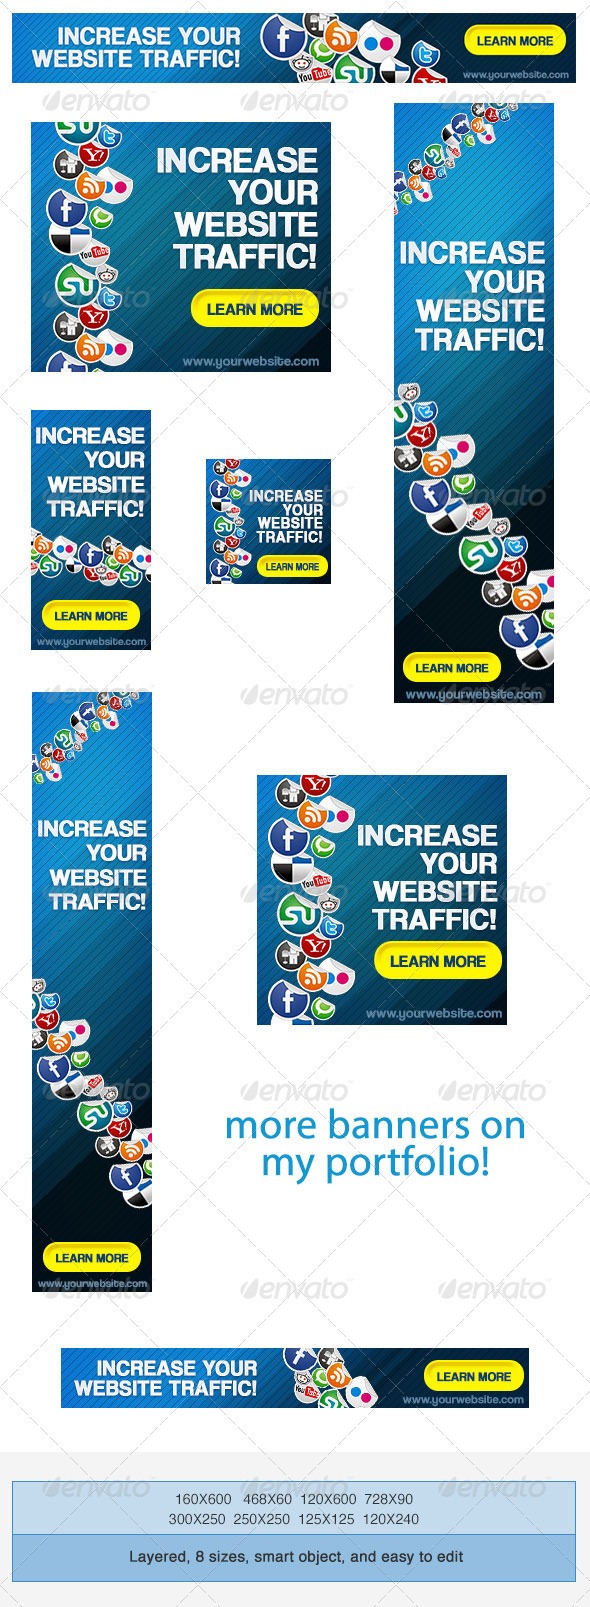 Social media network banner ad template graphicriver for Online marketing campaign template